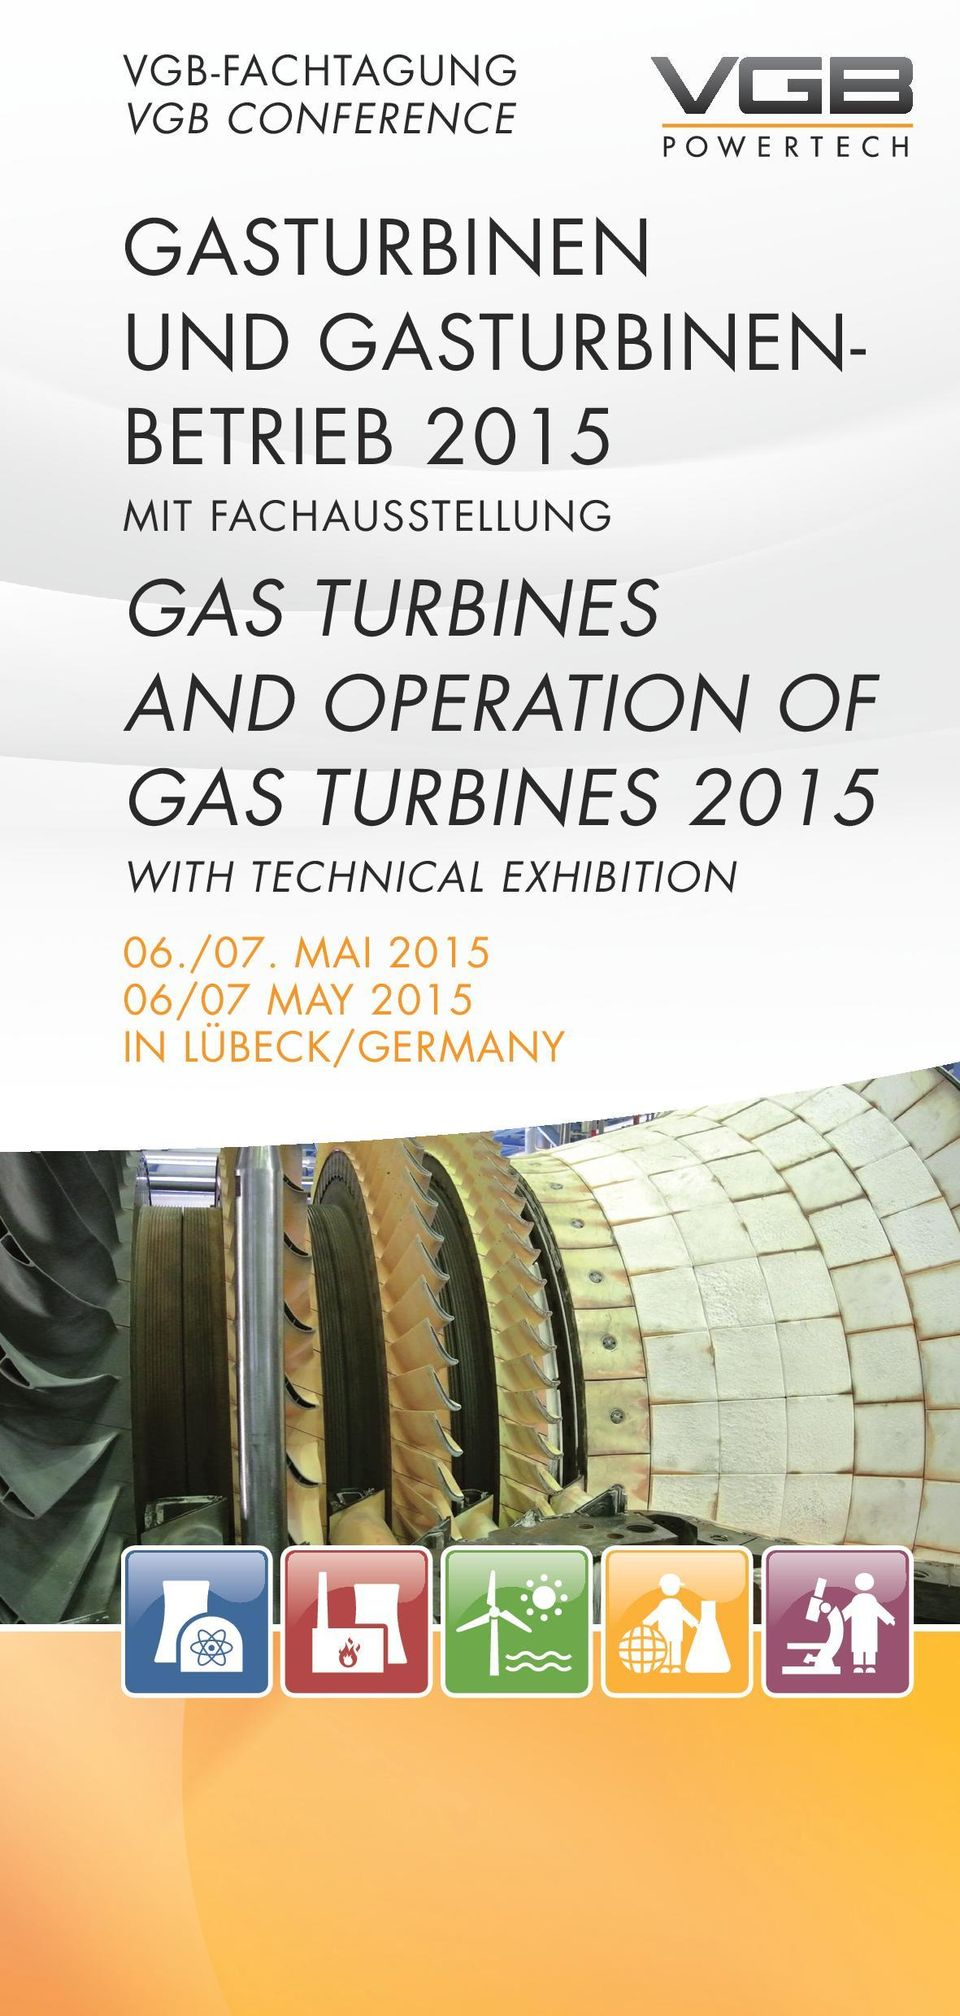 TURBINES AND OPERATION OF GAS TURBINES 2015 WITH